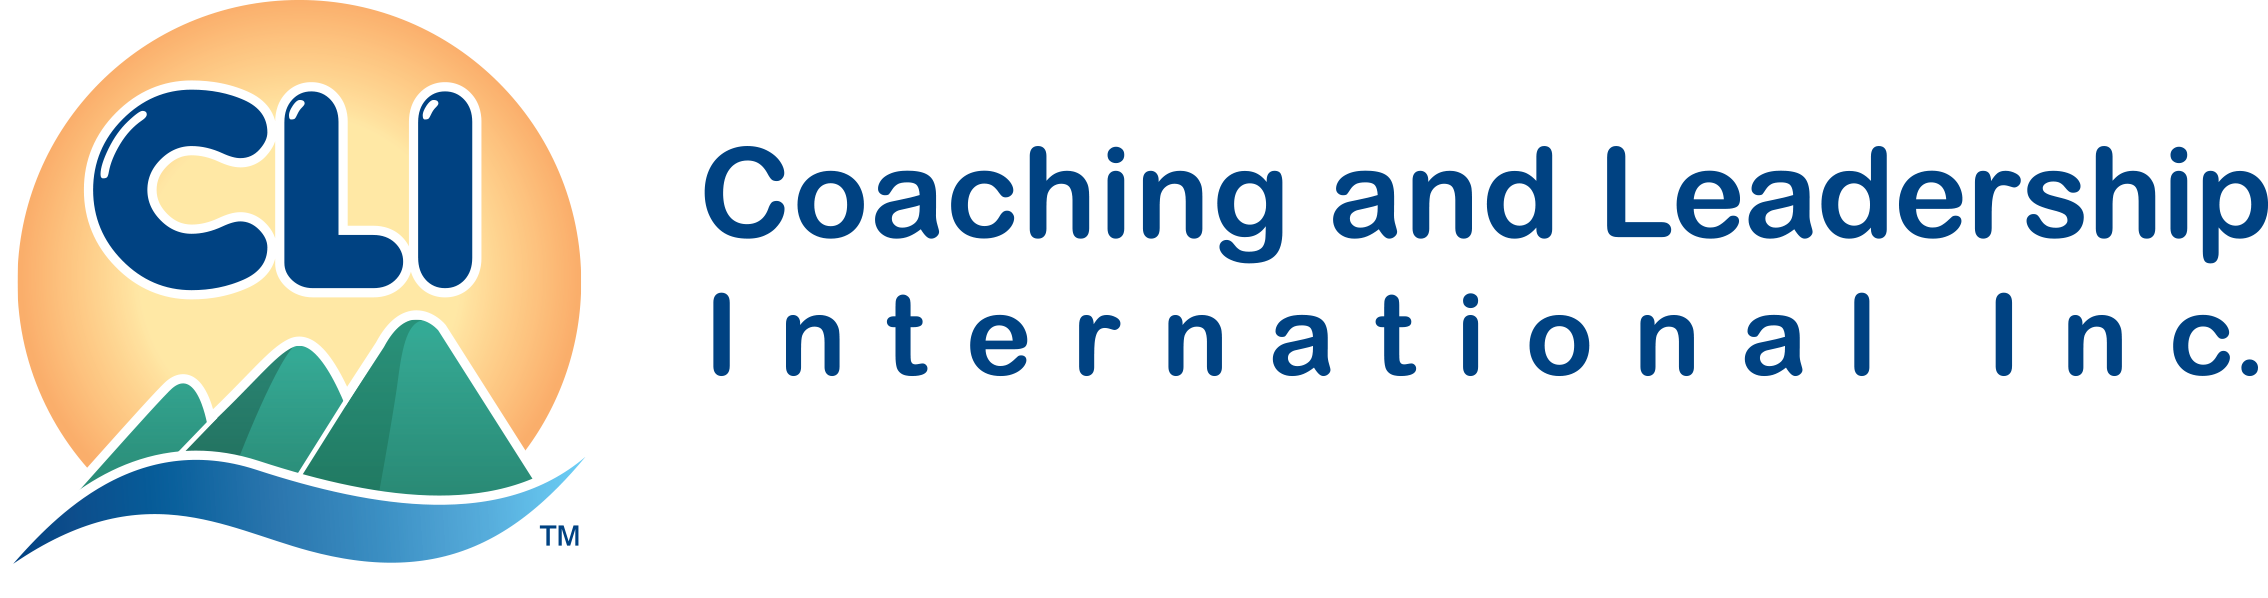 Coaching and Leadership International Inc logo